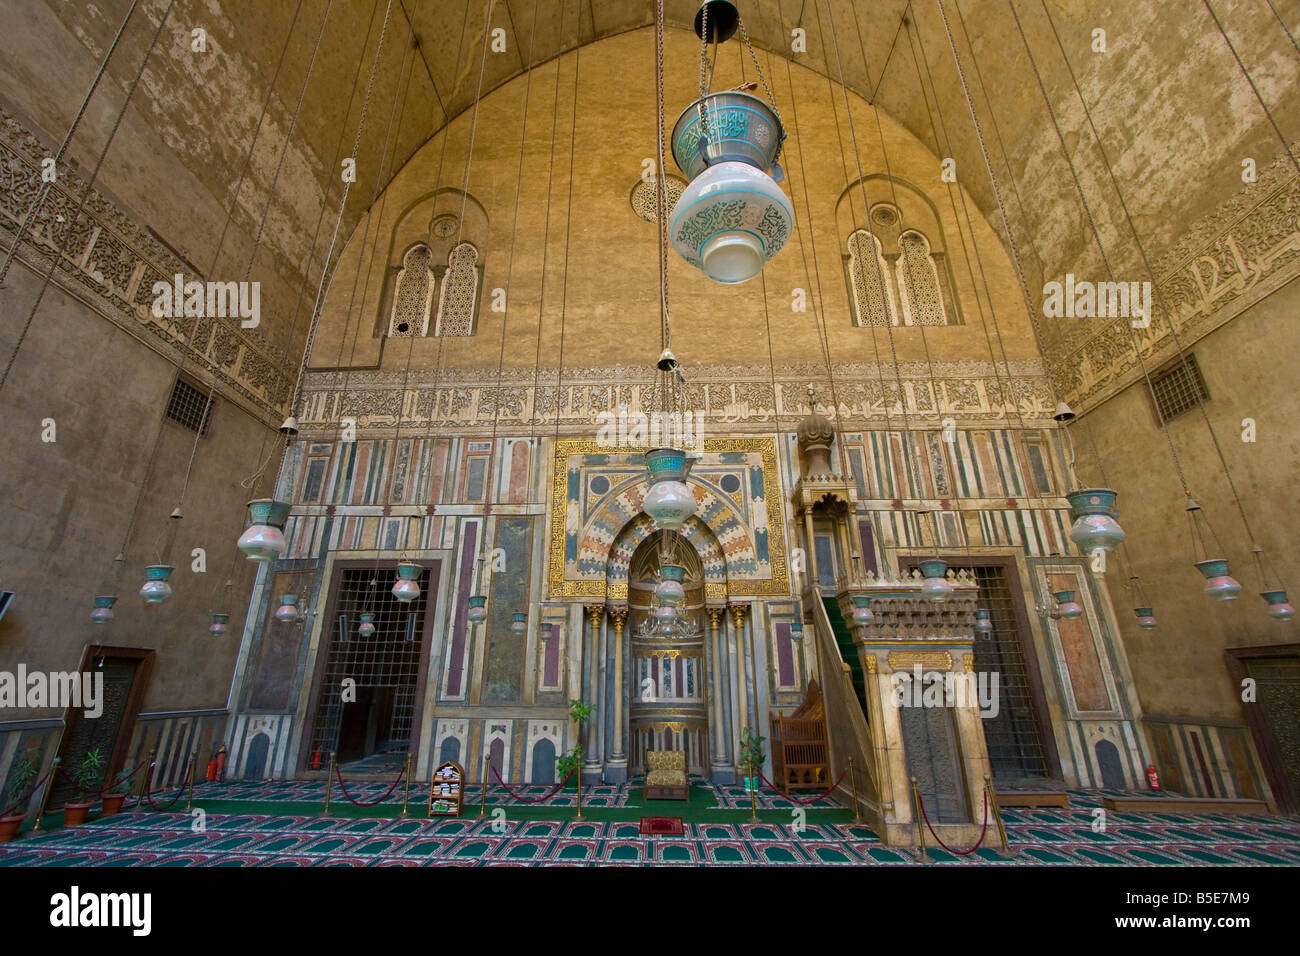 Inside Sultan Hassan Mosque In Islamic Cairo Egypt